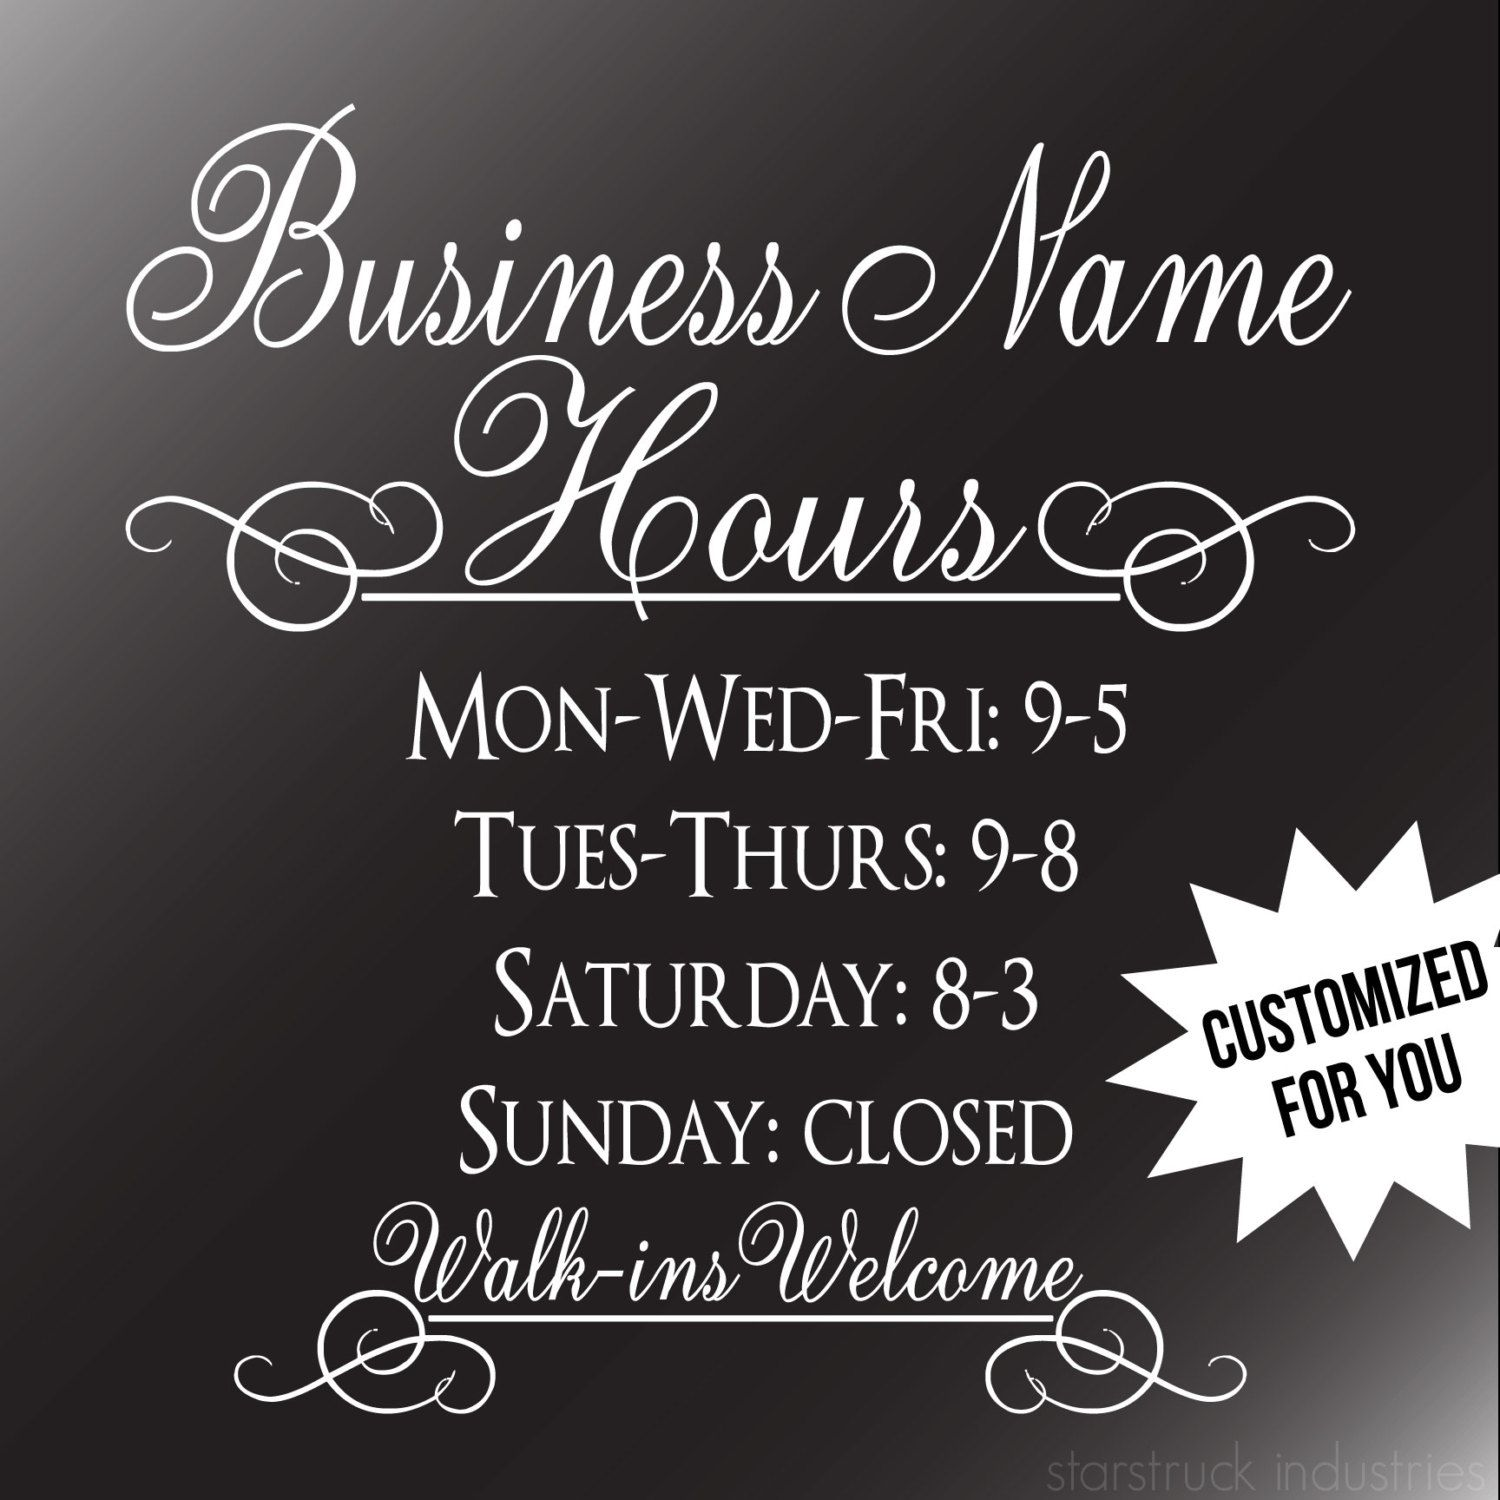 Business Hours Decal Storefront Window Business Hours